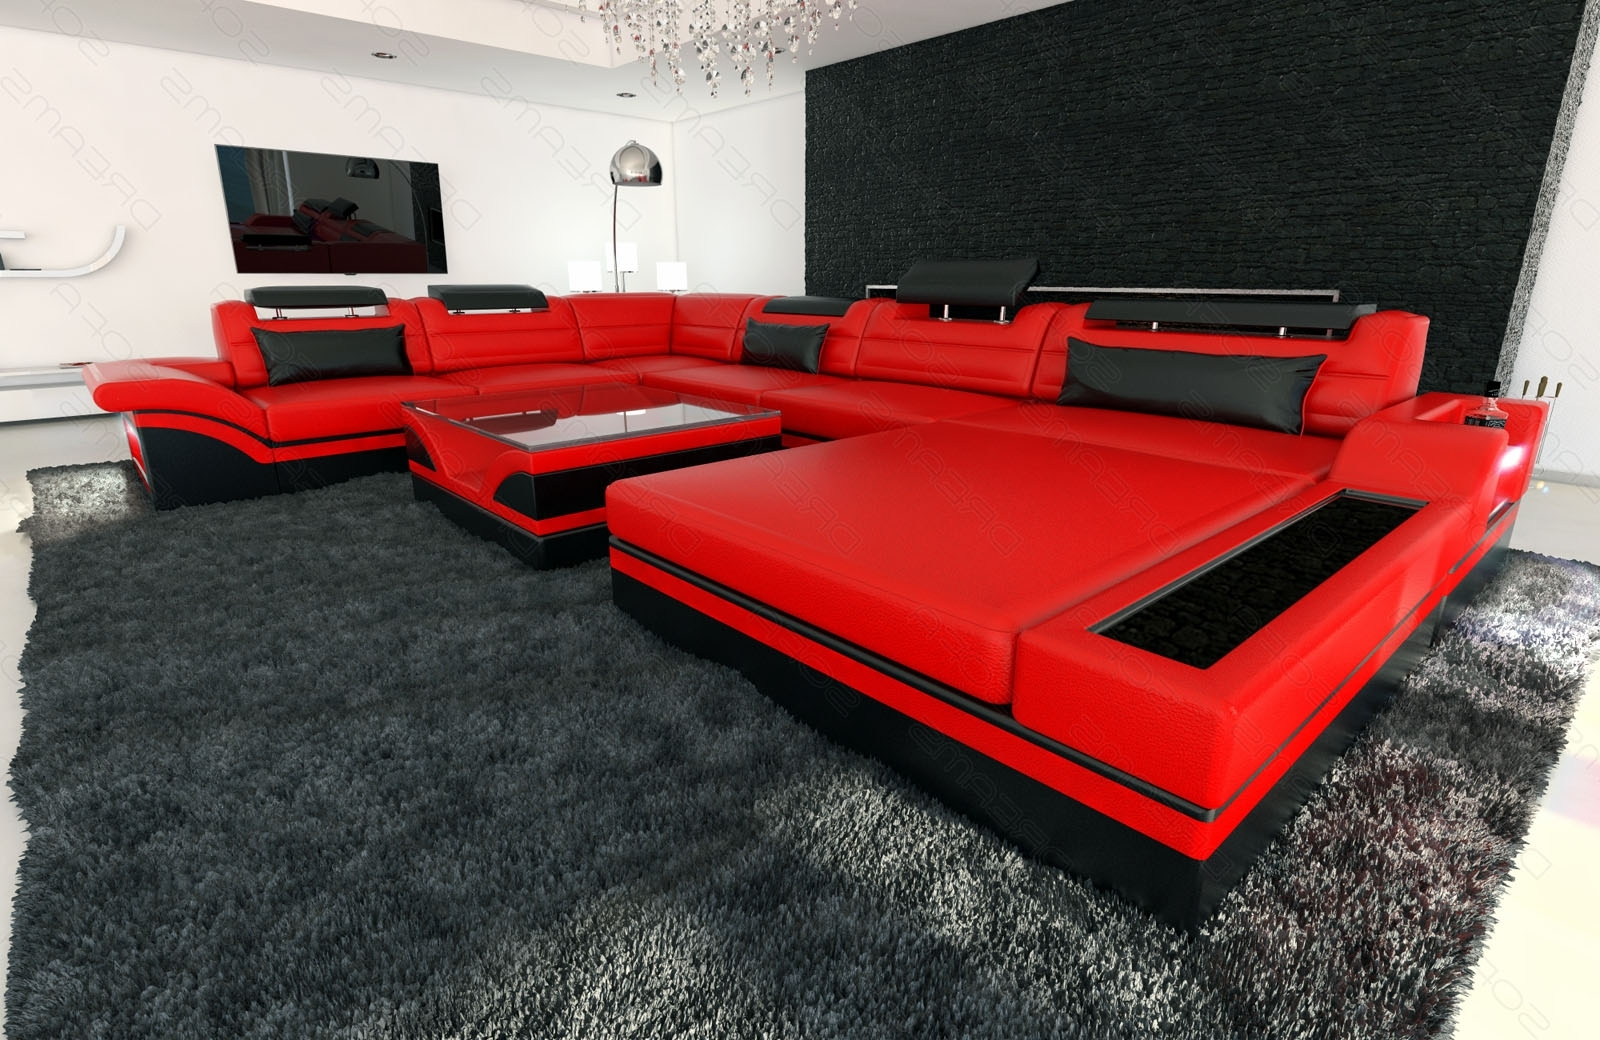 Design Sectional Sofa Mezzo Xxl With Led Lights Red Black (View 3 of 20)